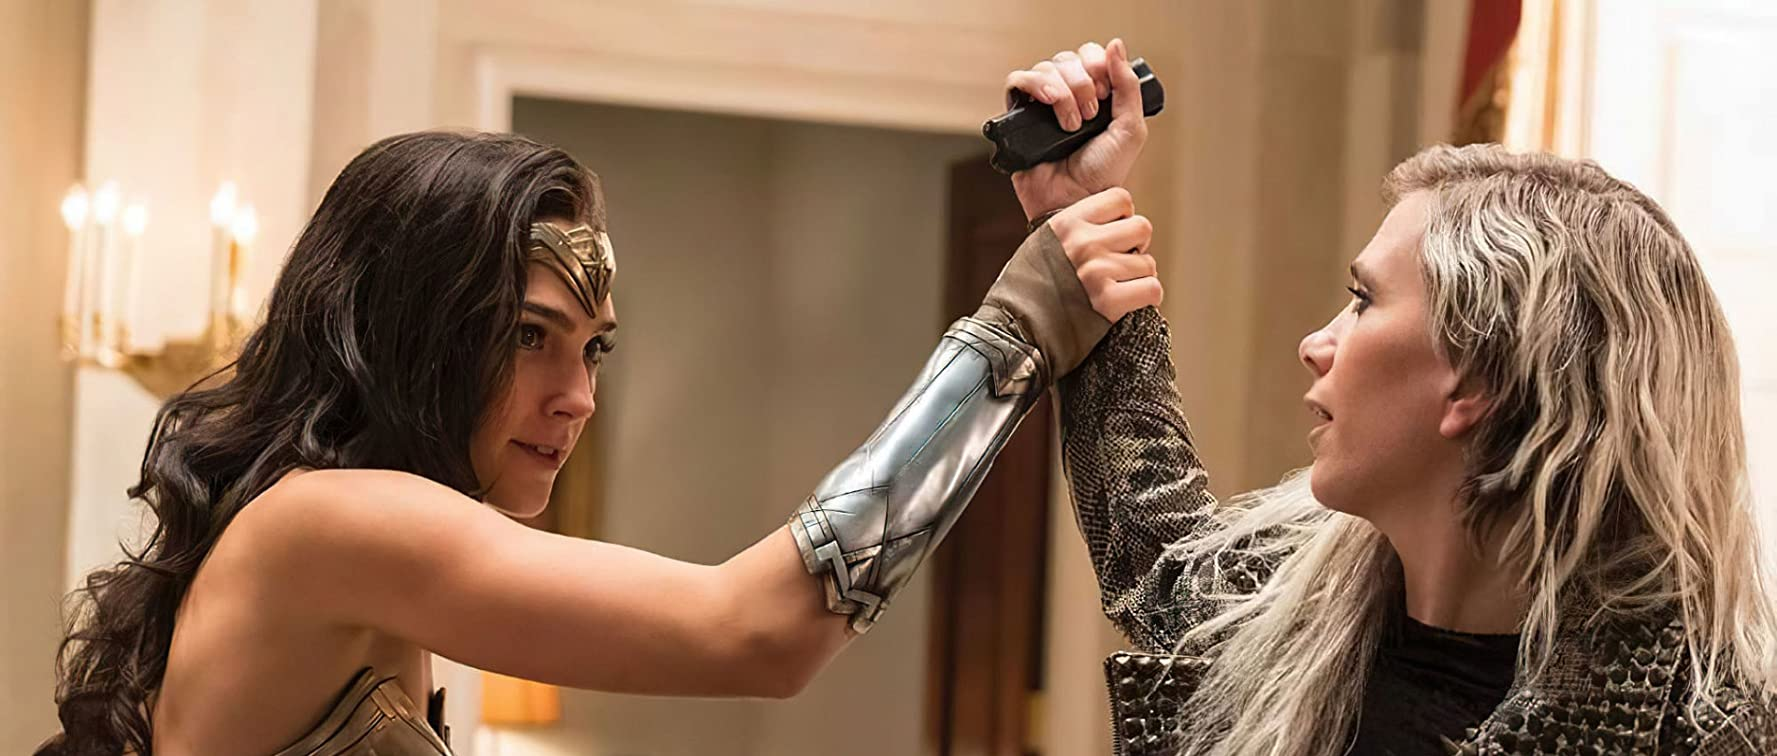 Wonder Woman 1984 Cheetah Introduction Meant for First Film – /Film